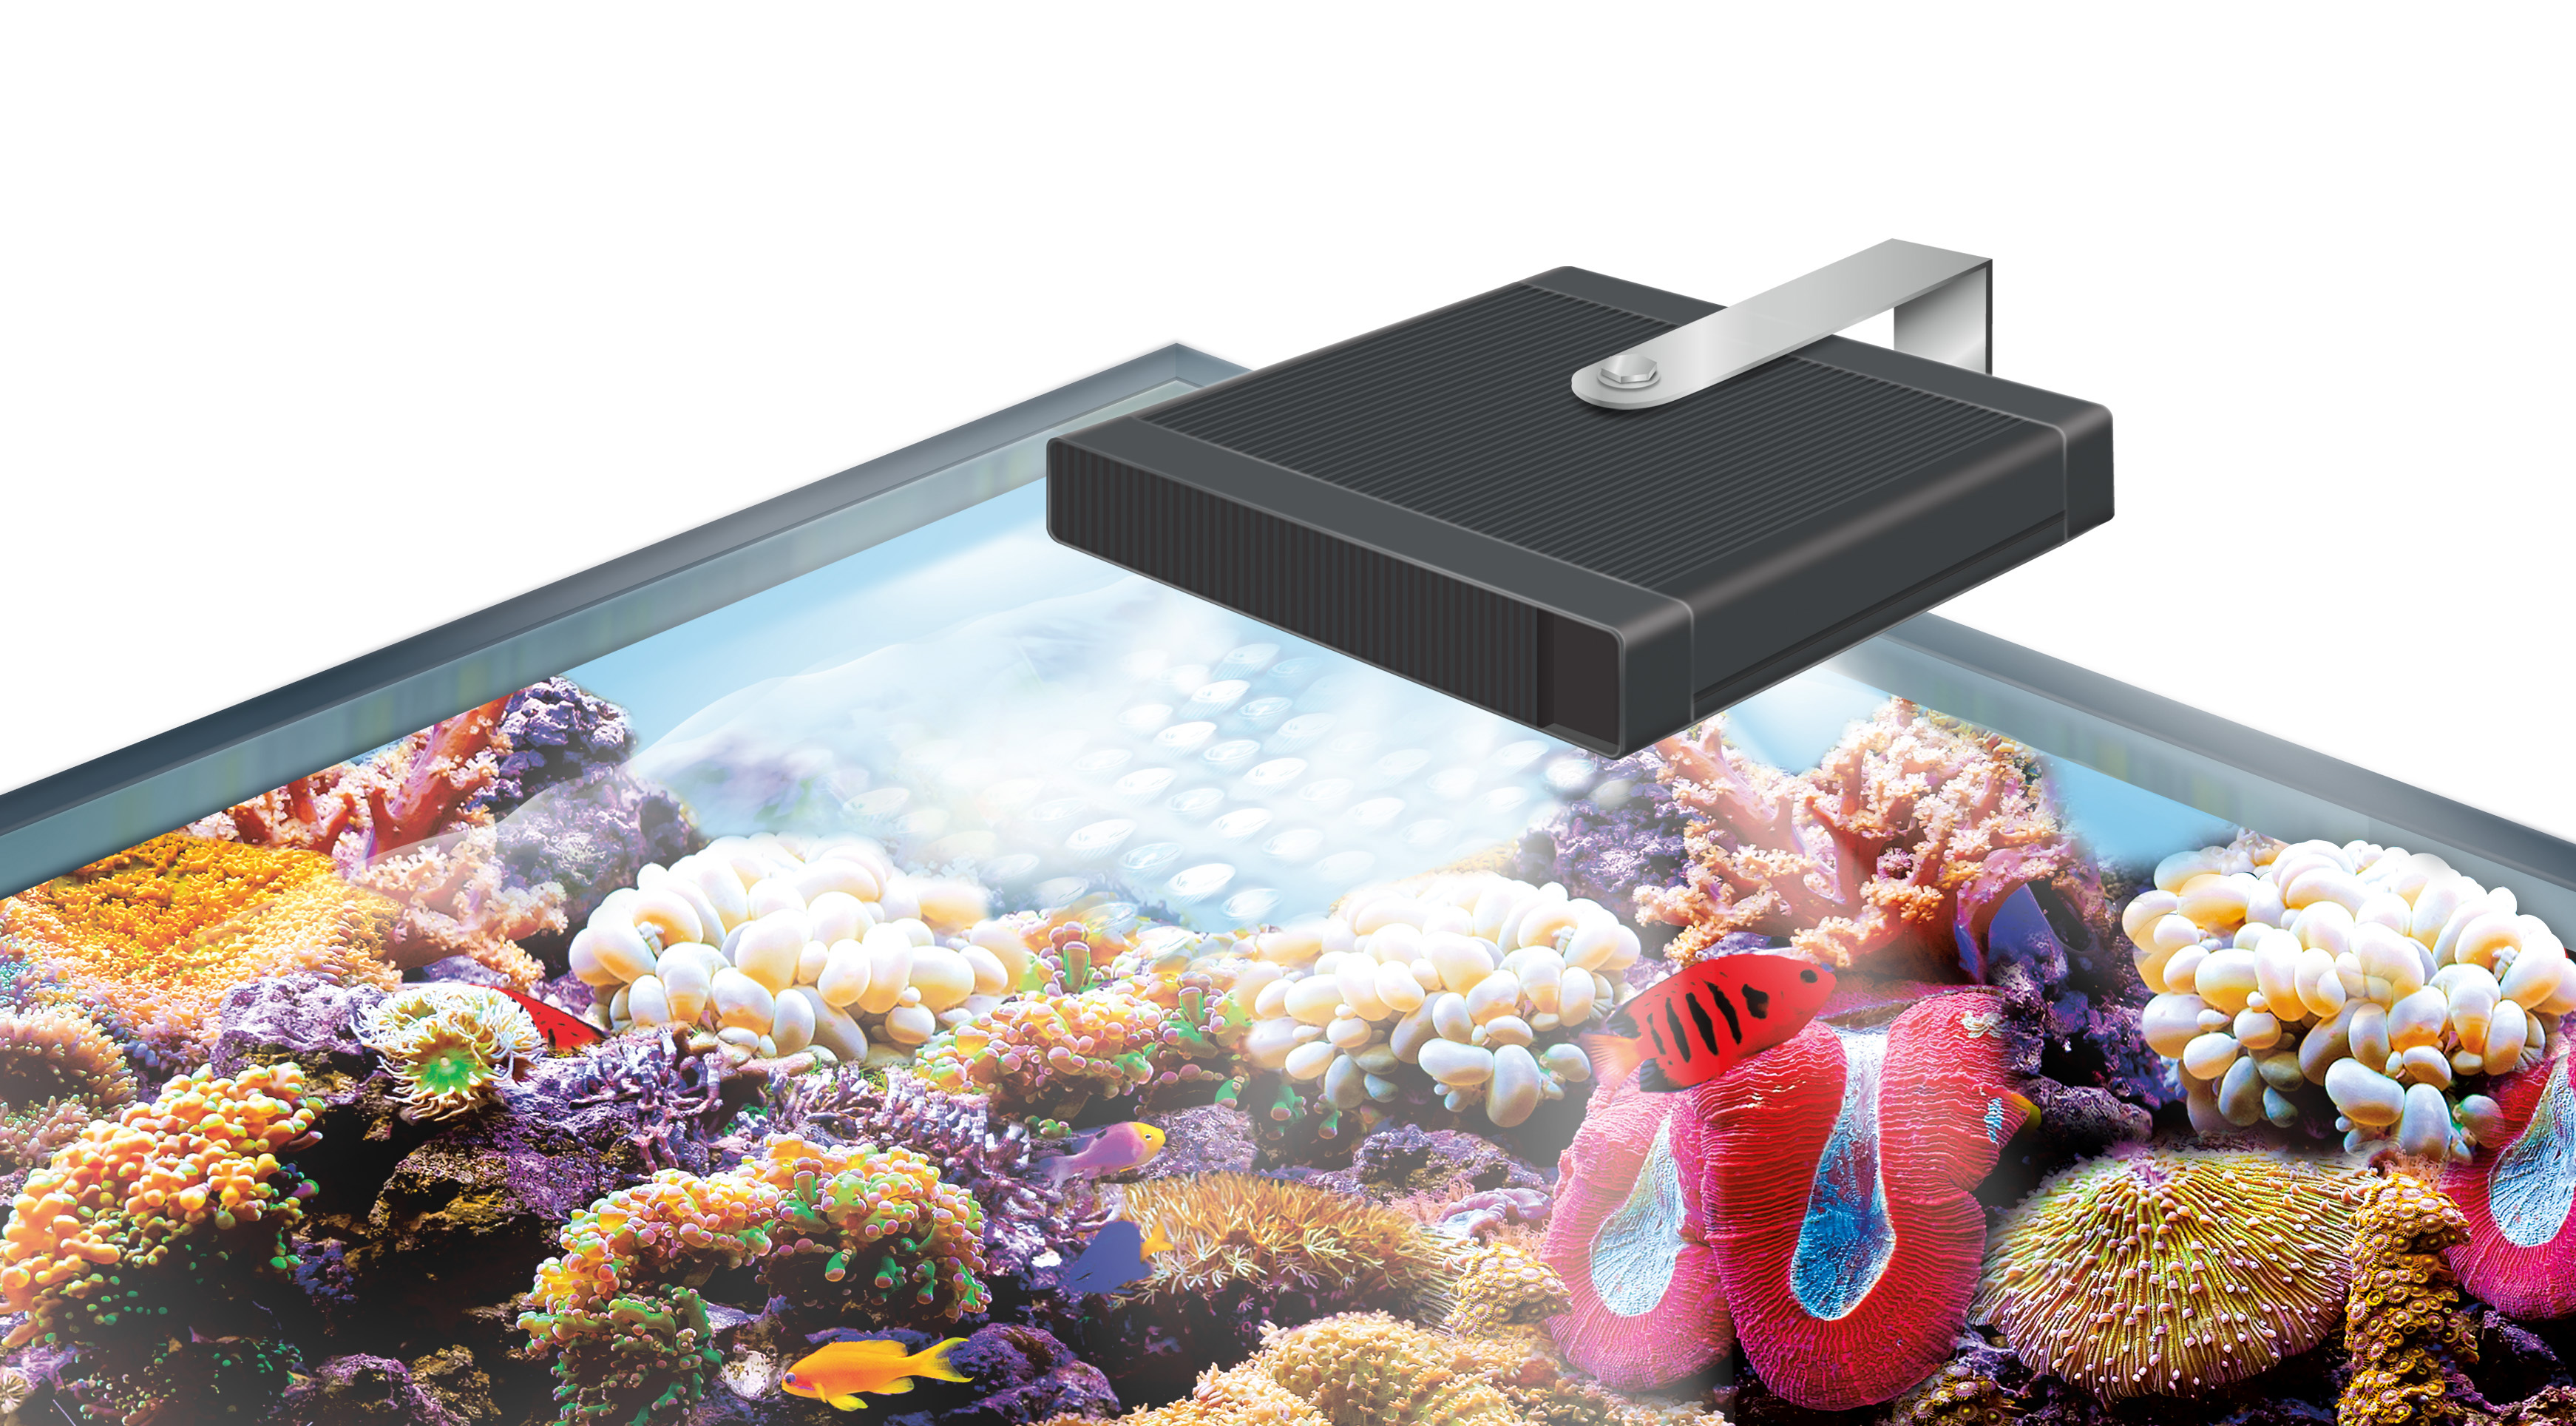 Got a smaller Marine tank? We have the solution. The Nano Marine and Reef performance LED l& ...  sc 1 st  Hagen & Introducing Fluval High Performance LED Lighting azcodes.com